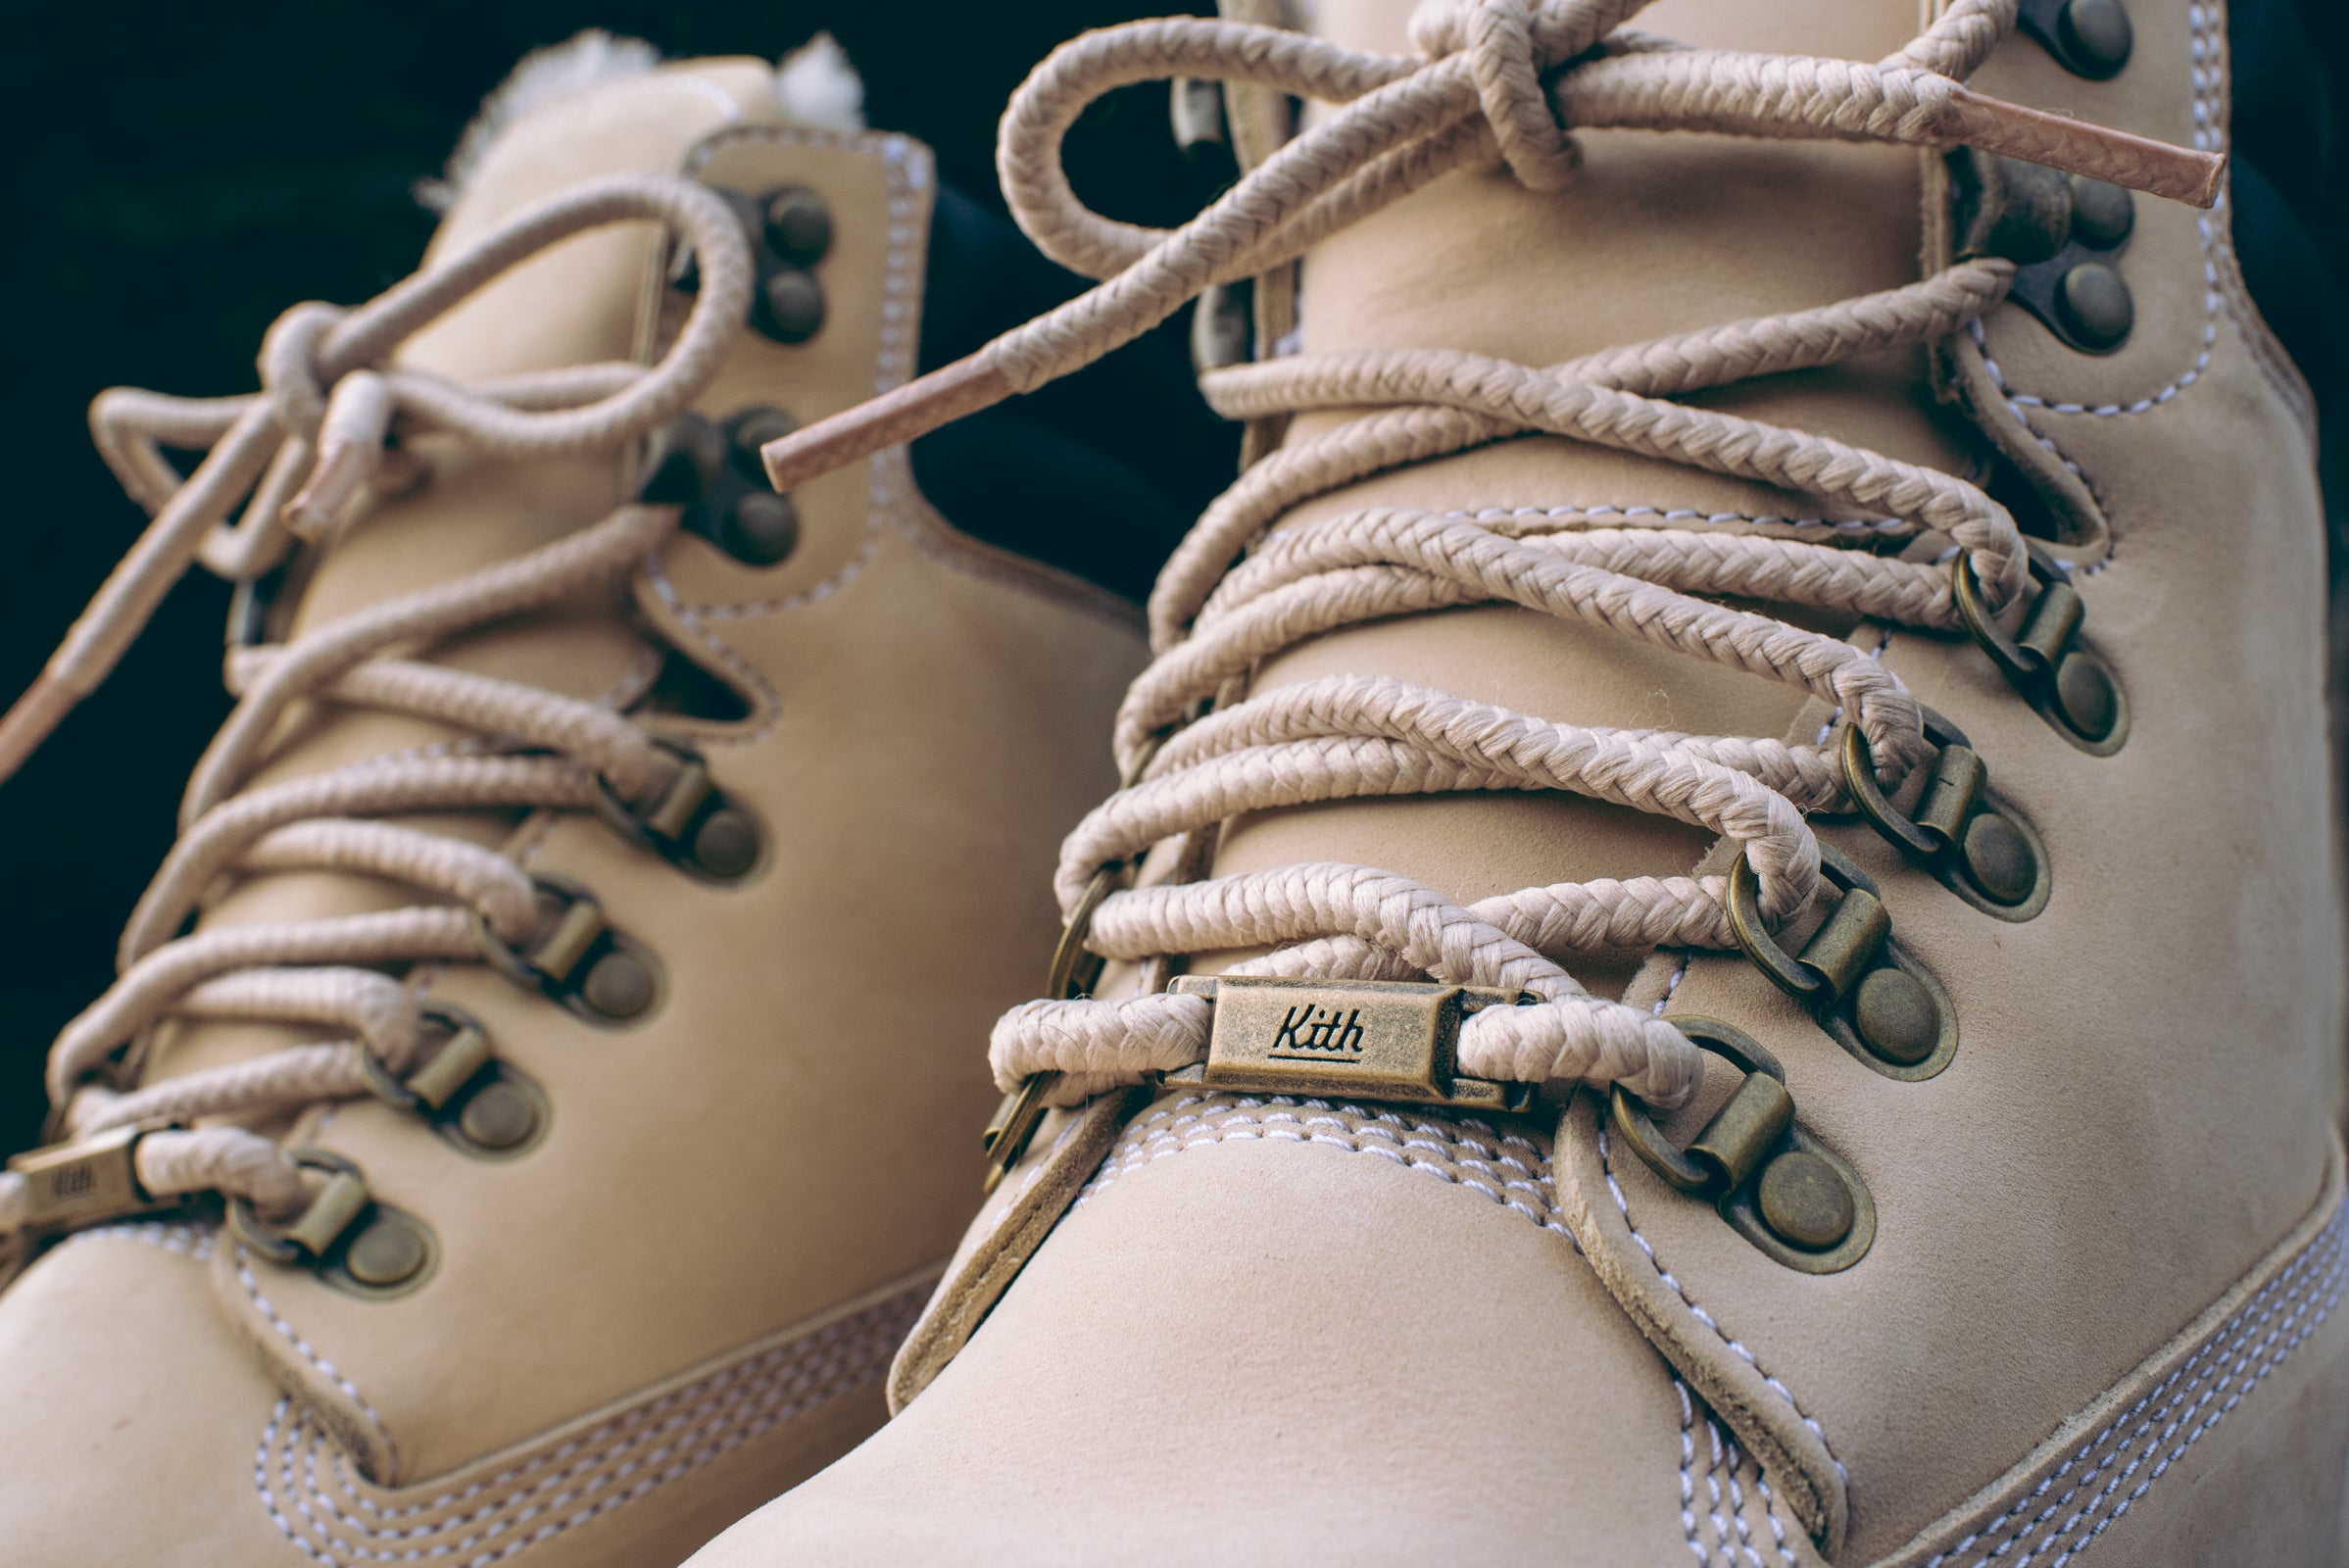 872a3935355e6 Ronnie Fieg x Timberland Collection for Kith Aspen